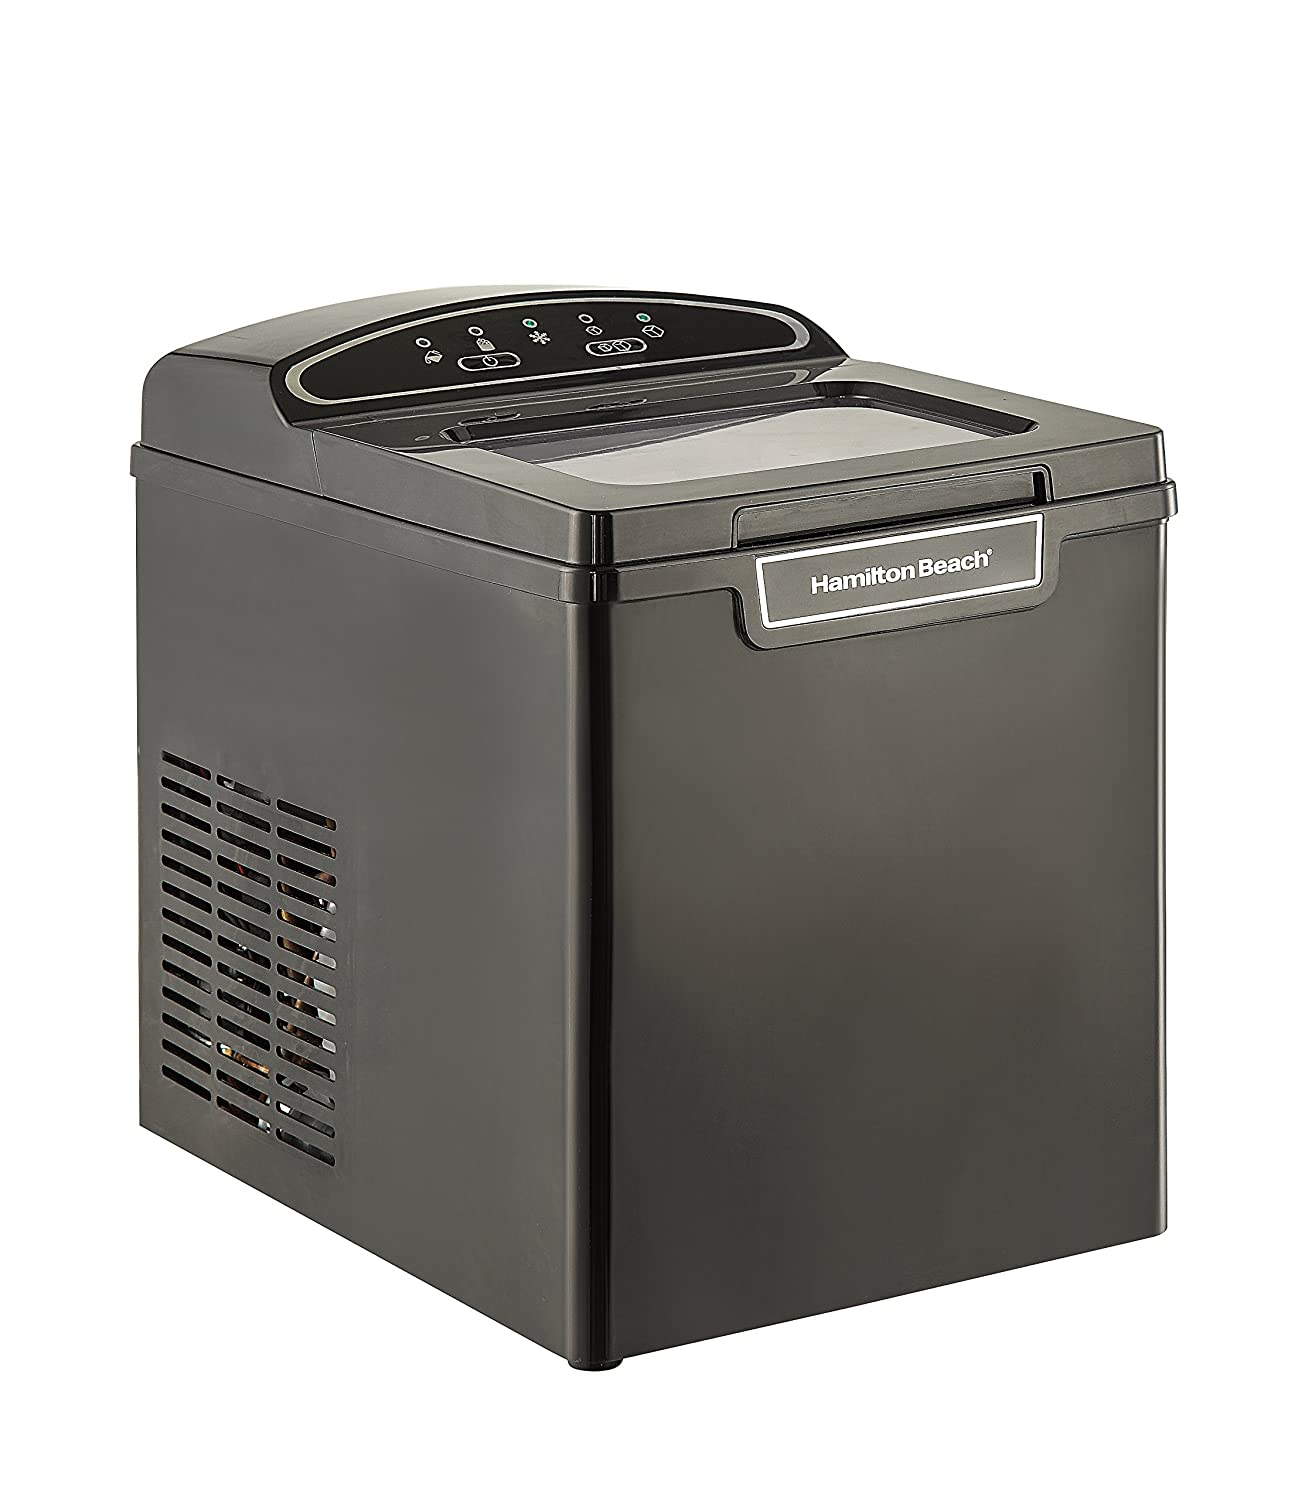 Hamilton Beach PIM-1-3A Portable Ice maker